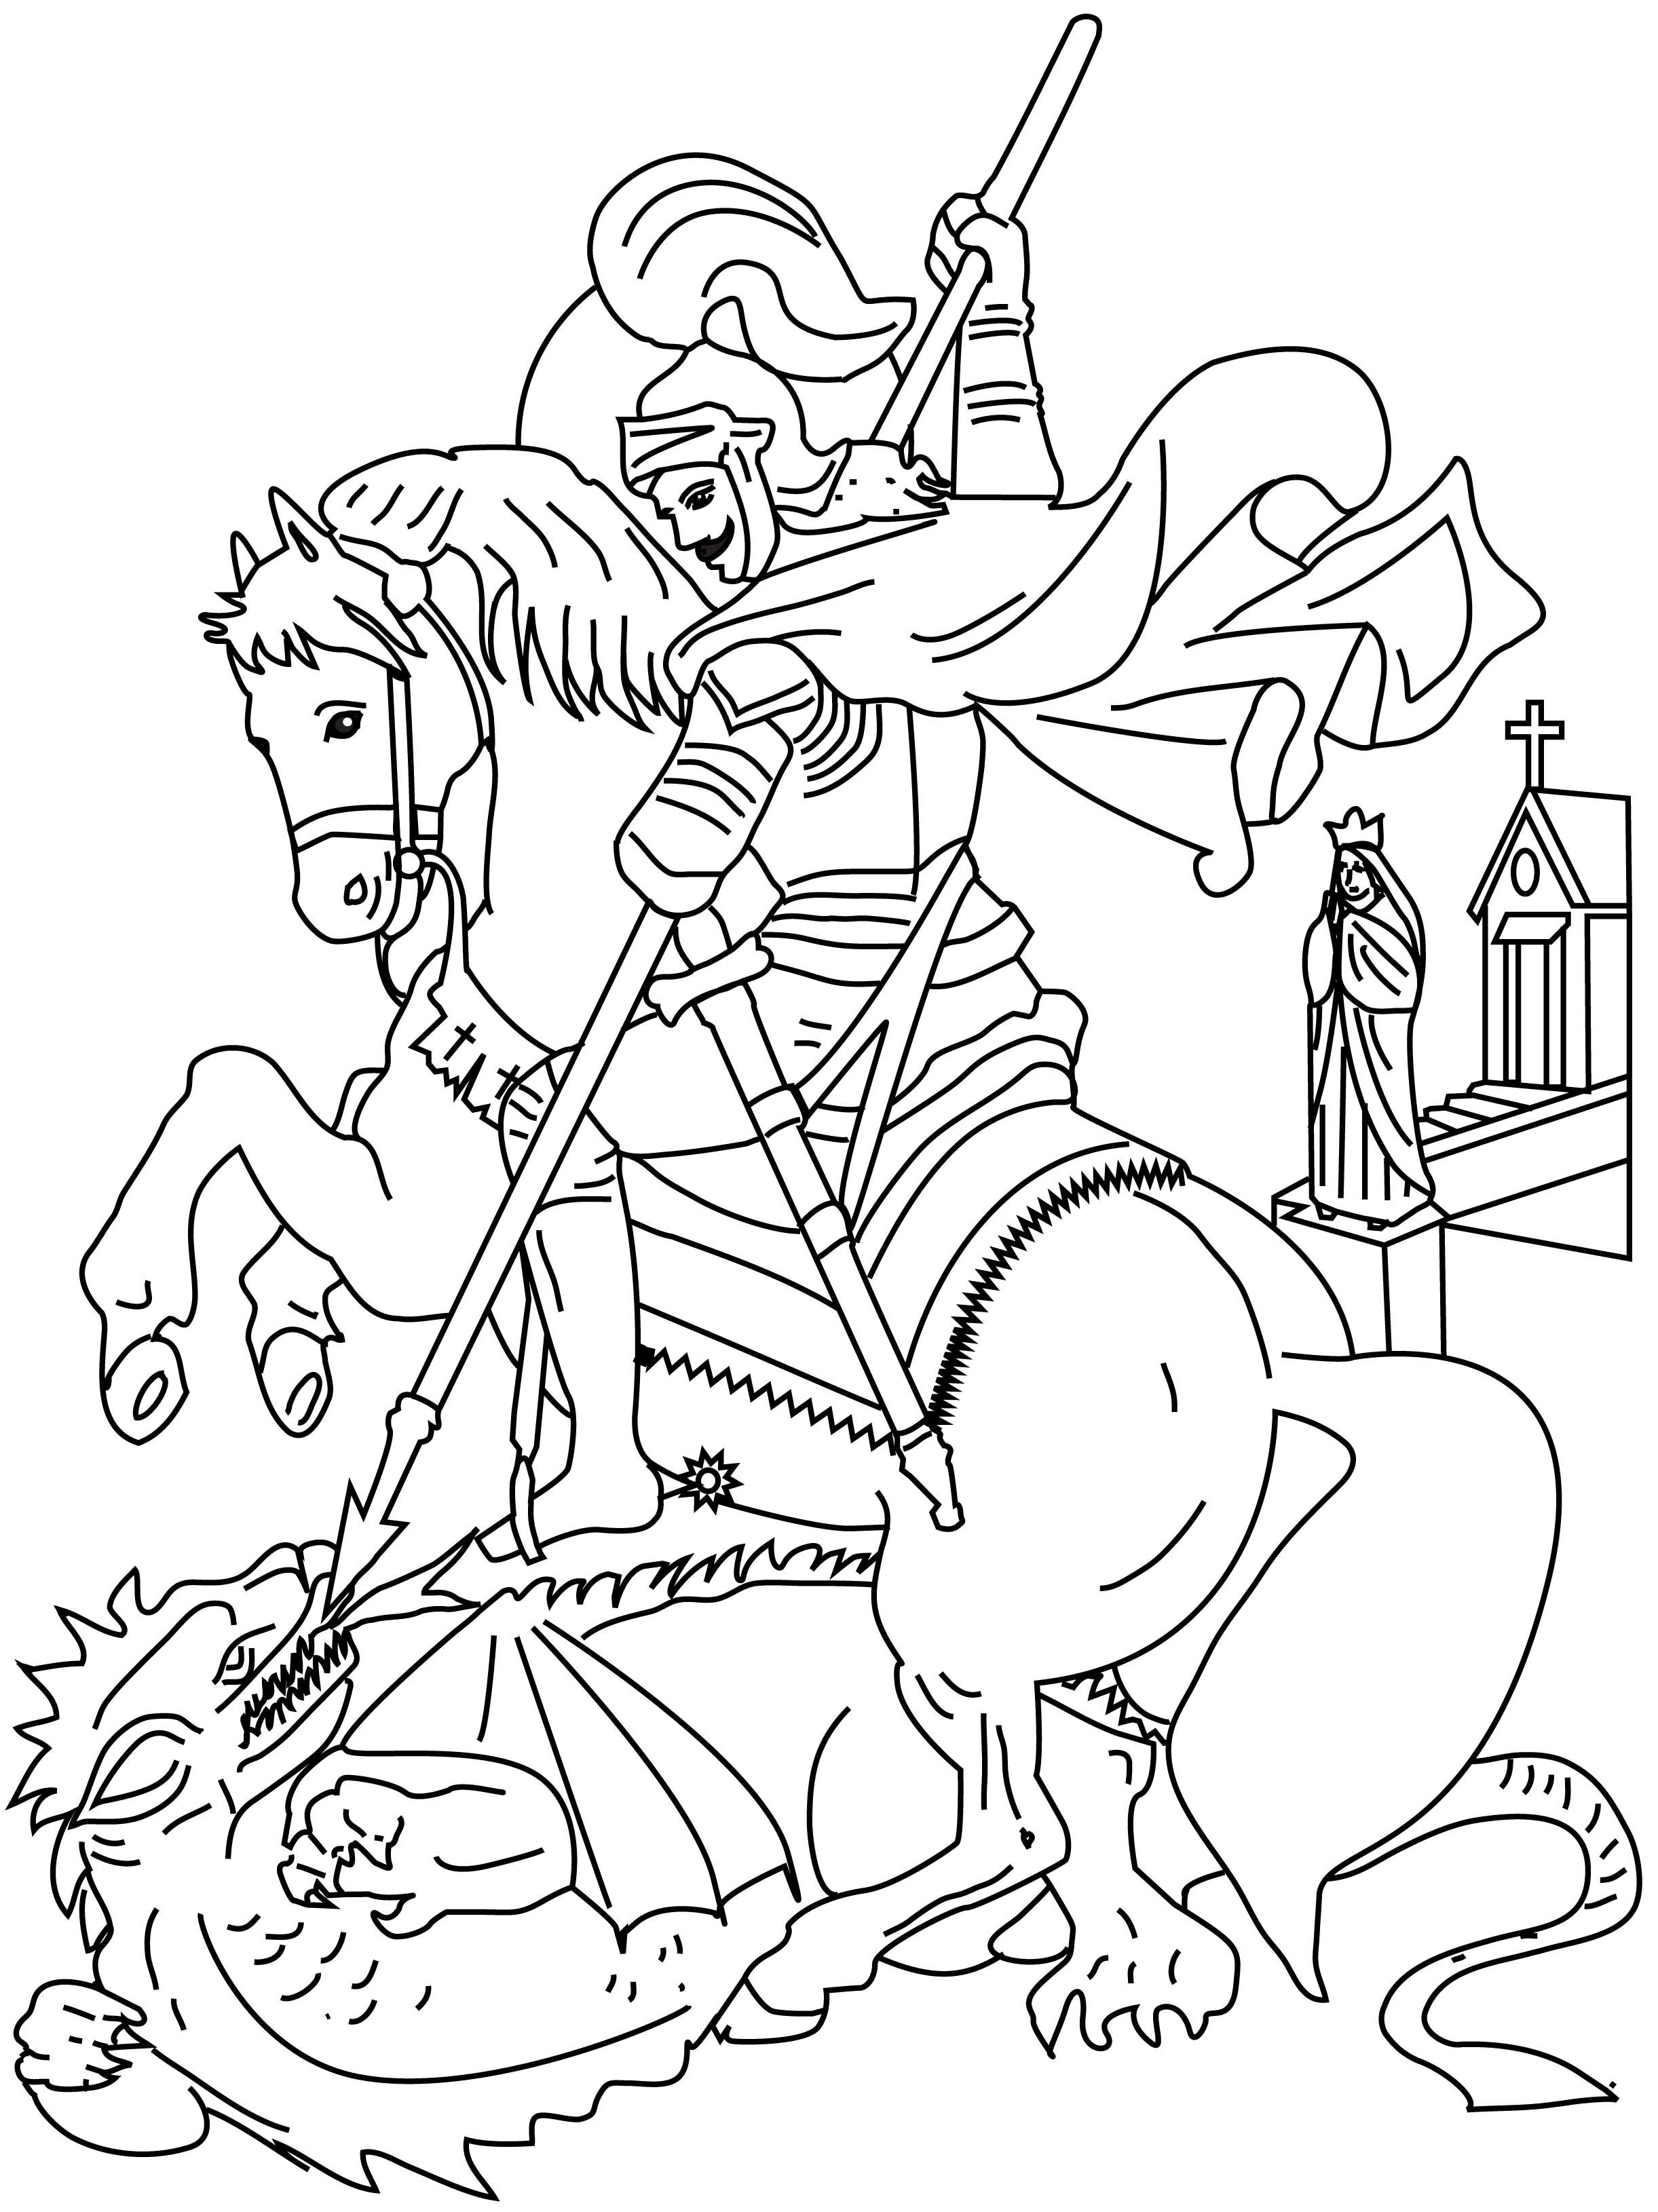 Another St. George Catholic Coloring Page Feast day is April 23 ...